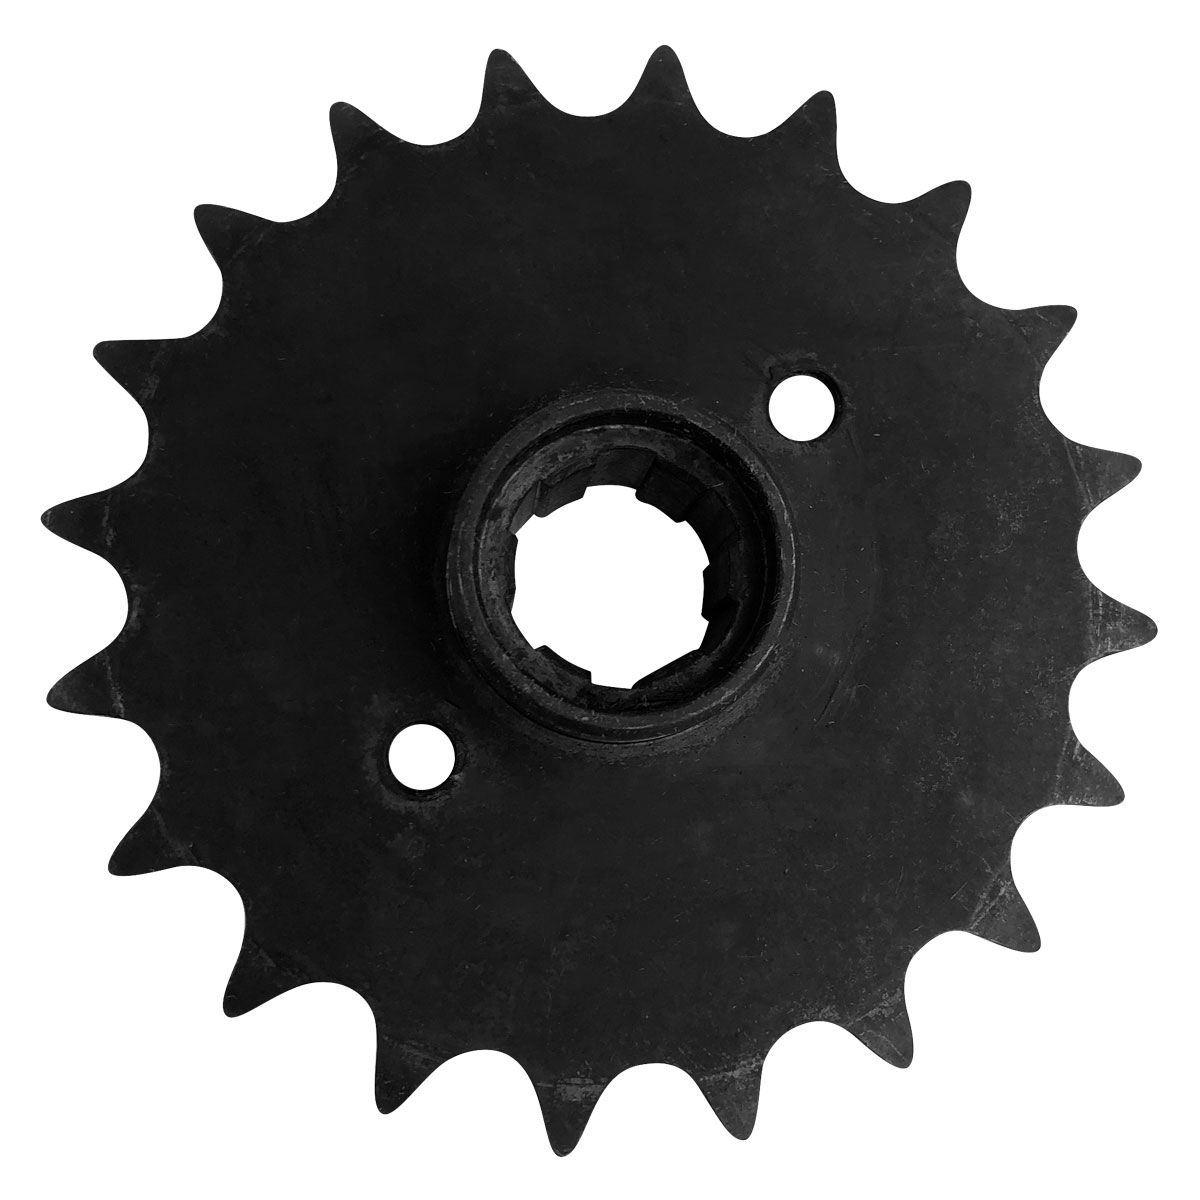 Eastern Motorcycle Parts  20 Tooth Heavy-Duty Transmission Sprocket